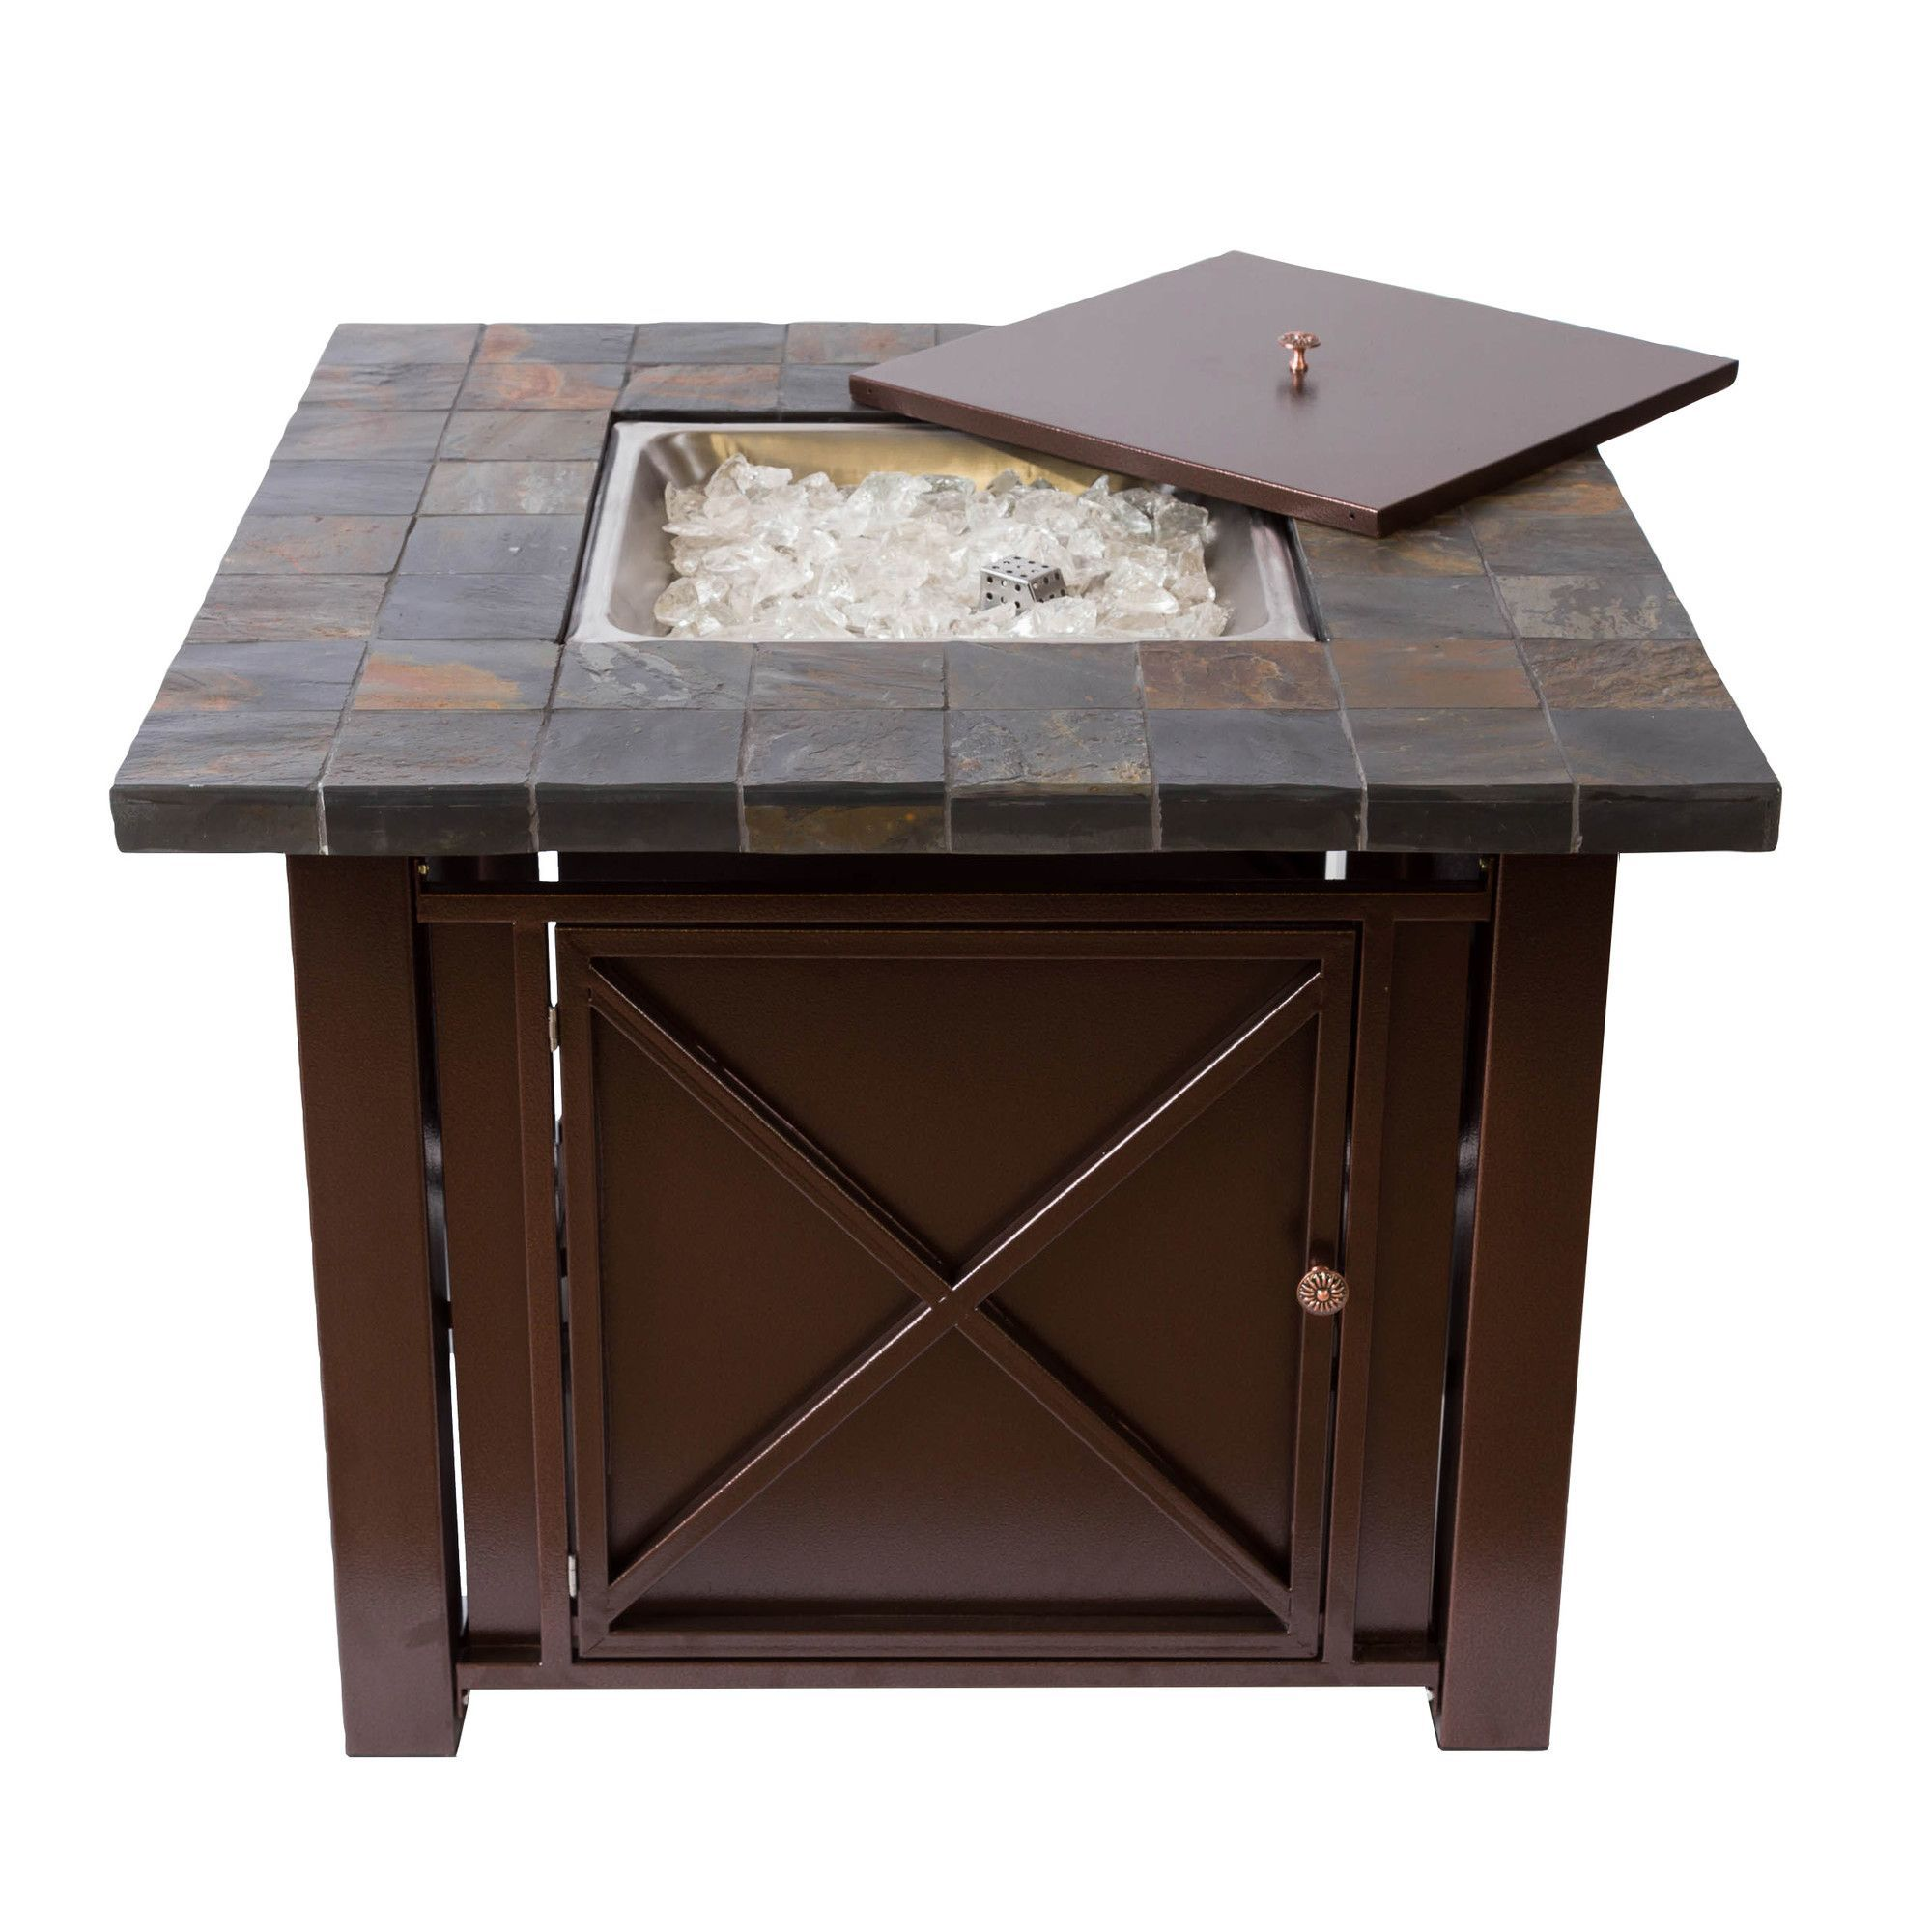 Bombay propane fire pit table with slate countertop for the